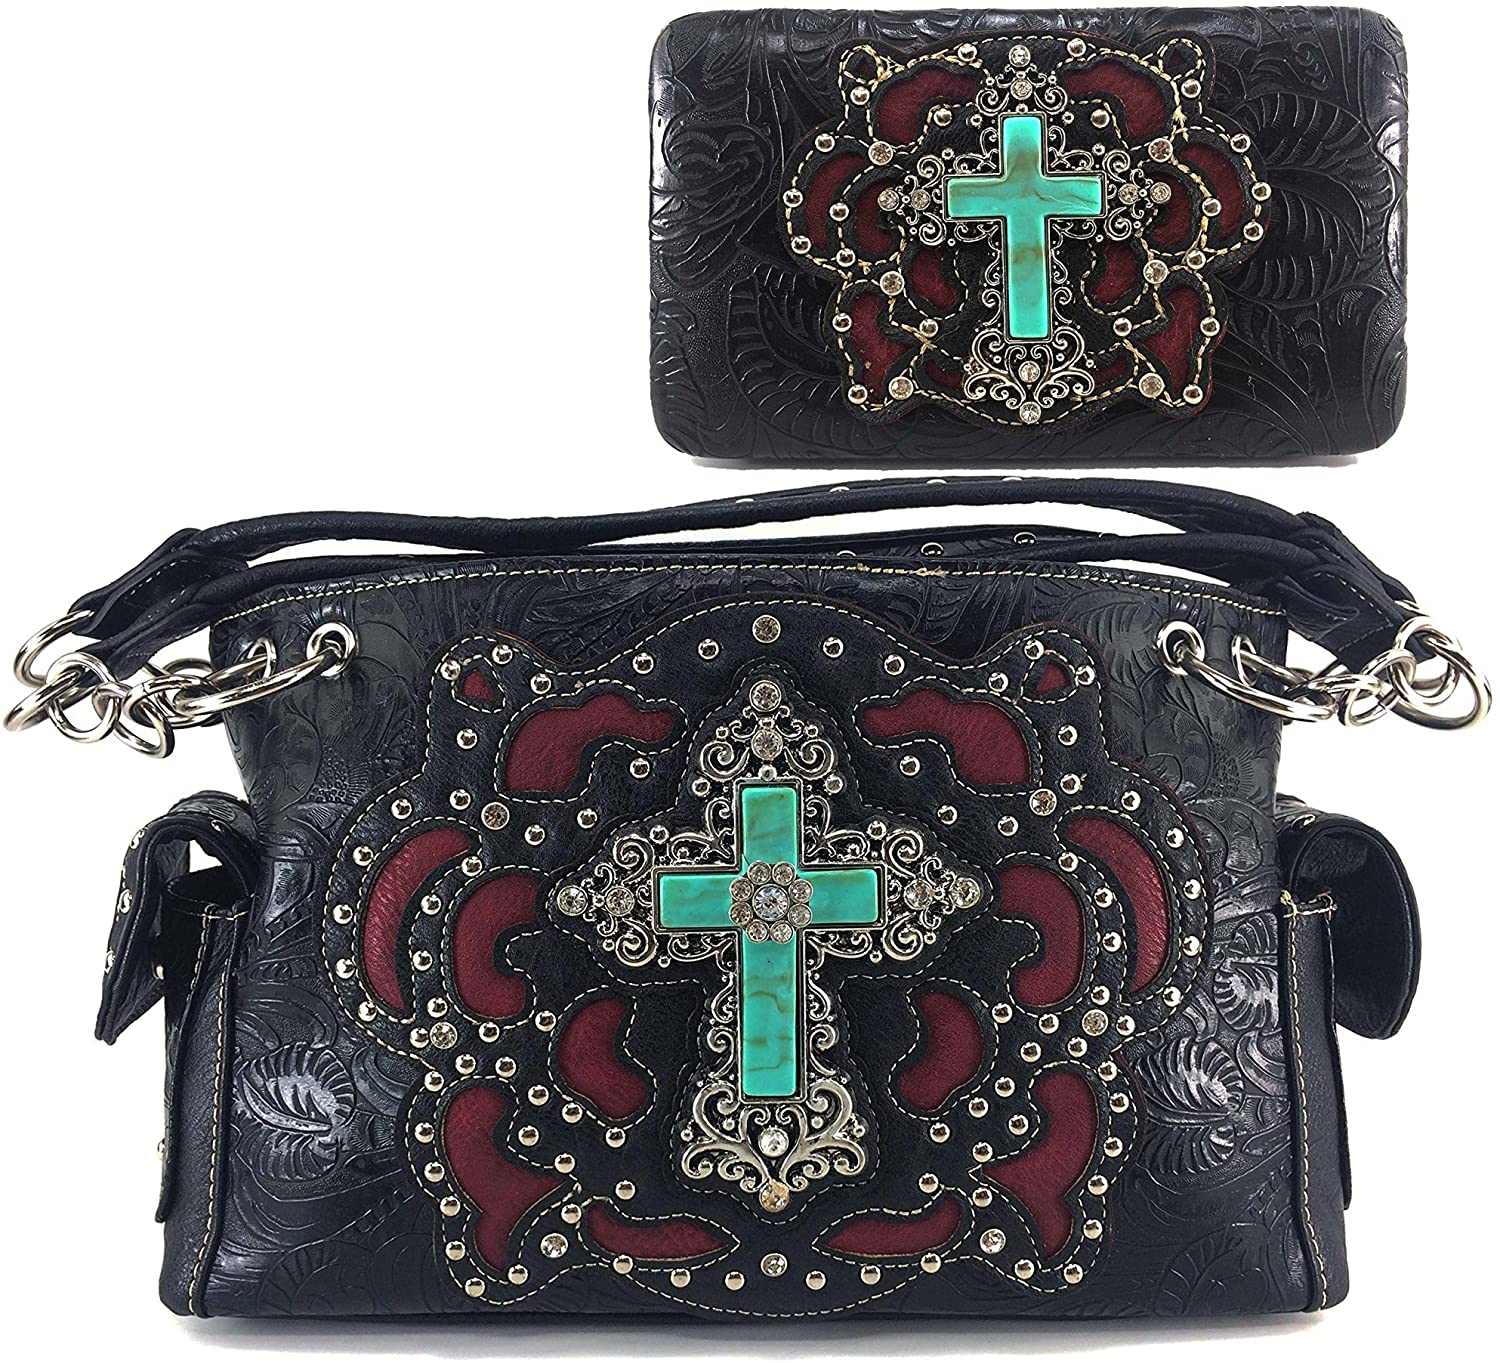 Justin West Paisley Embroidery Floral Tooled Leather Rhinestone Cross Shoulder Concealed Carry Handbag Purse